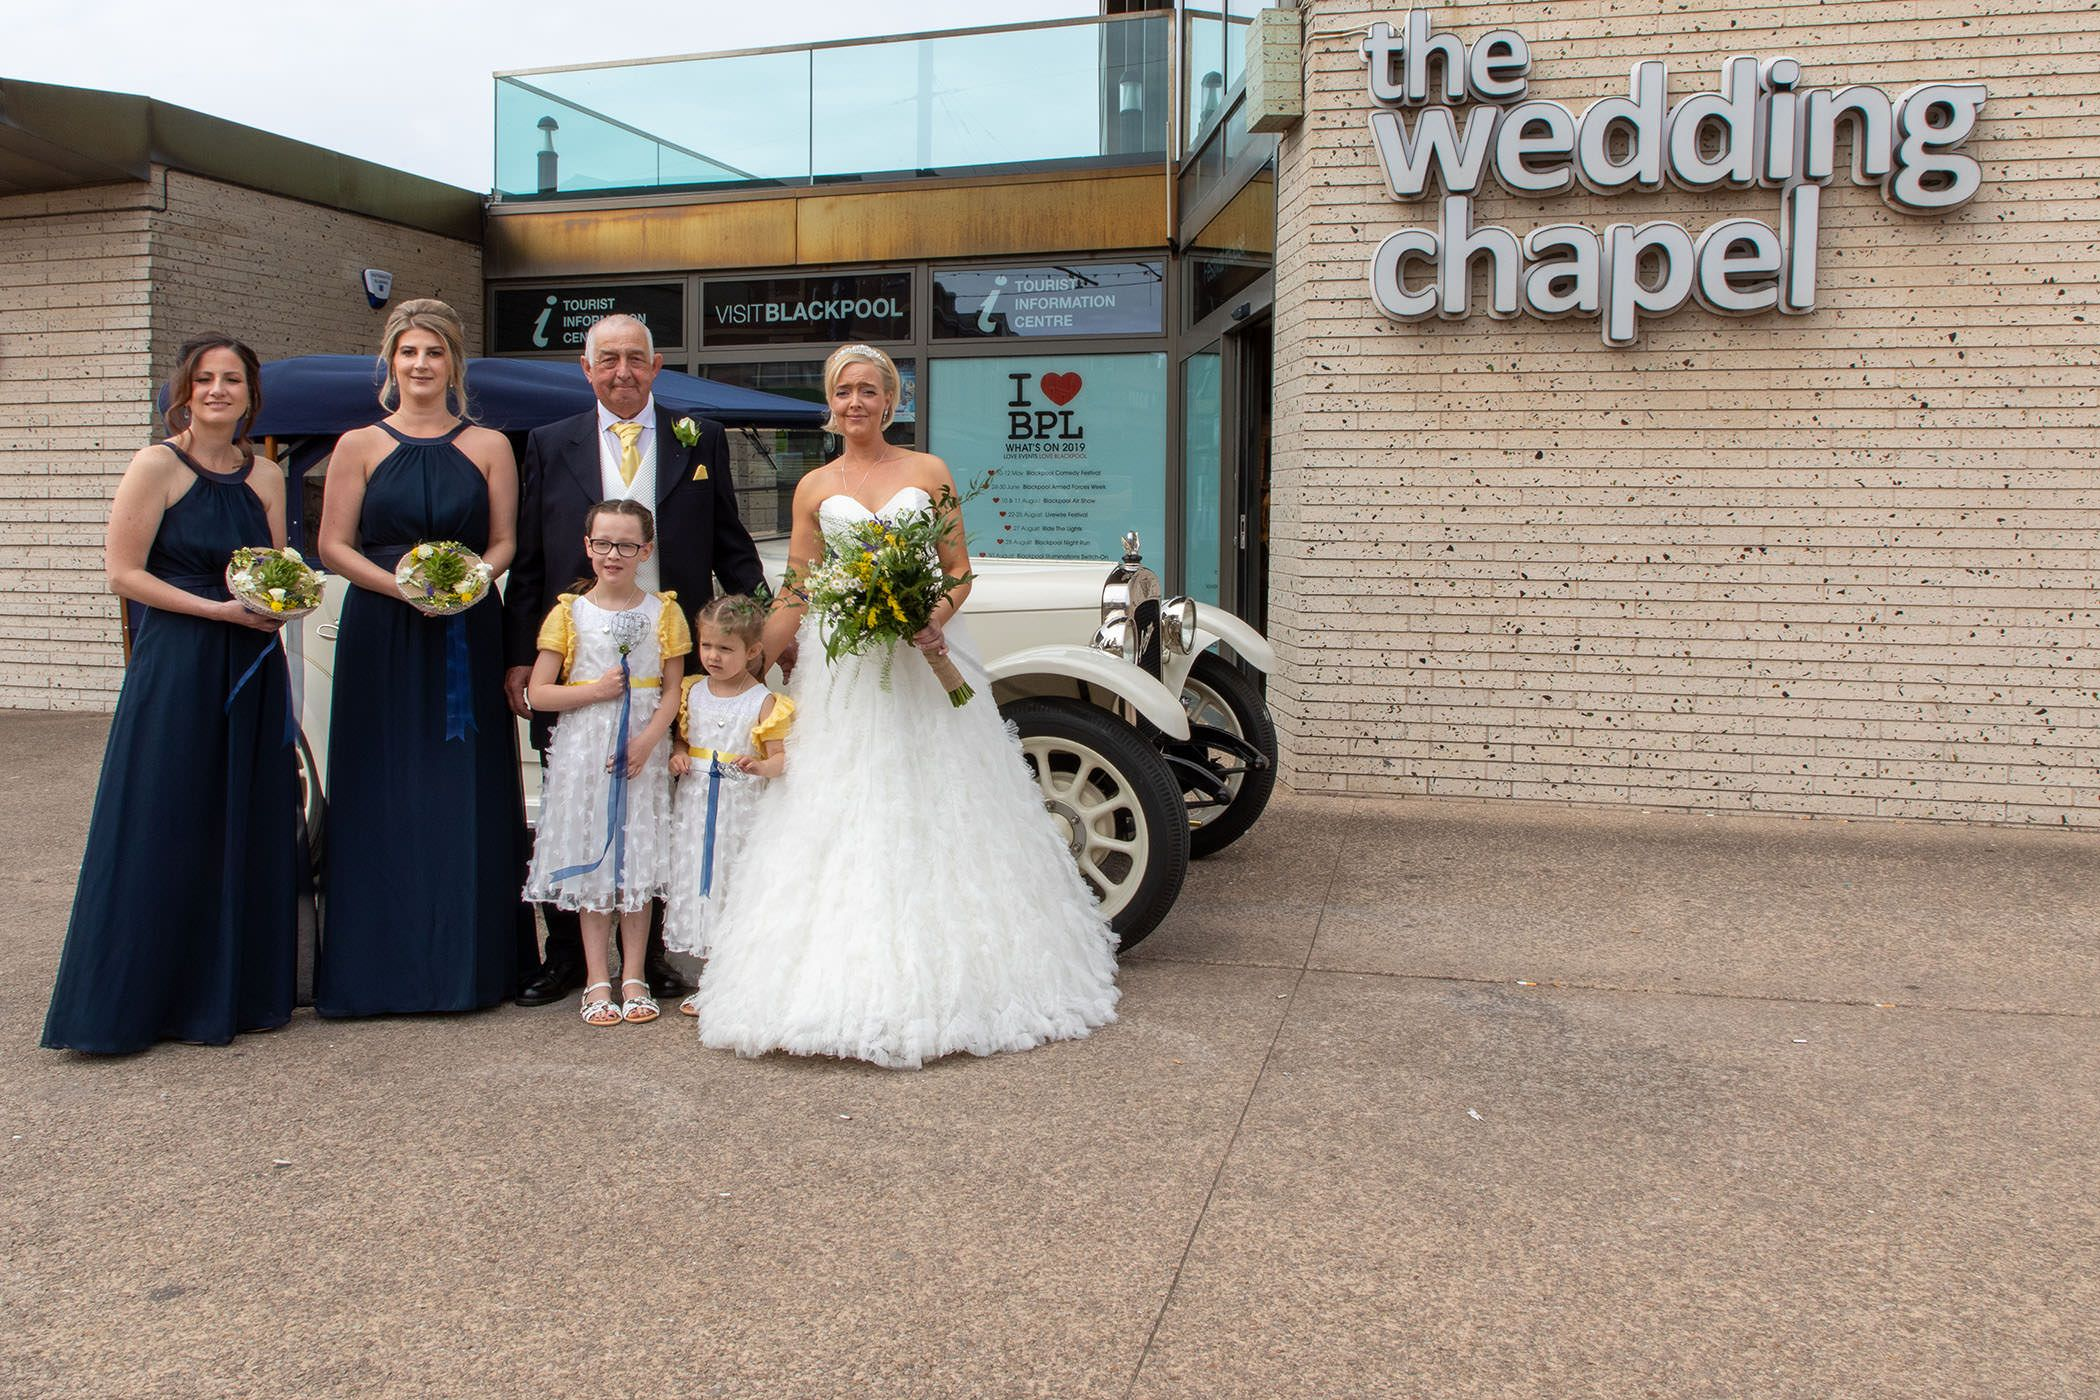 the bride arrives at the blackpool wedding chapel